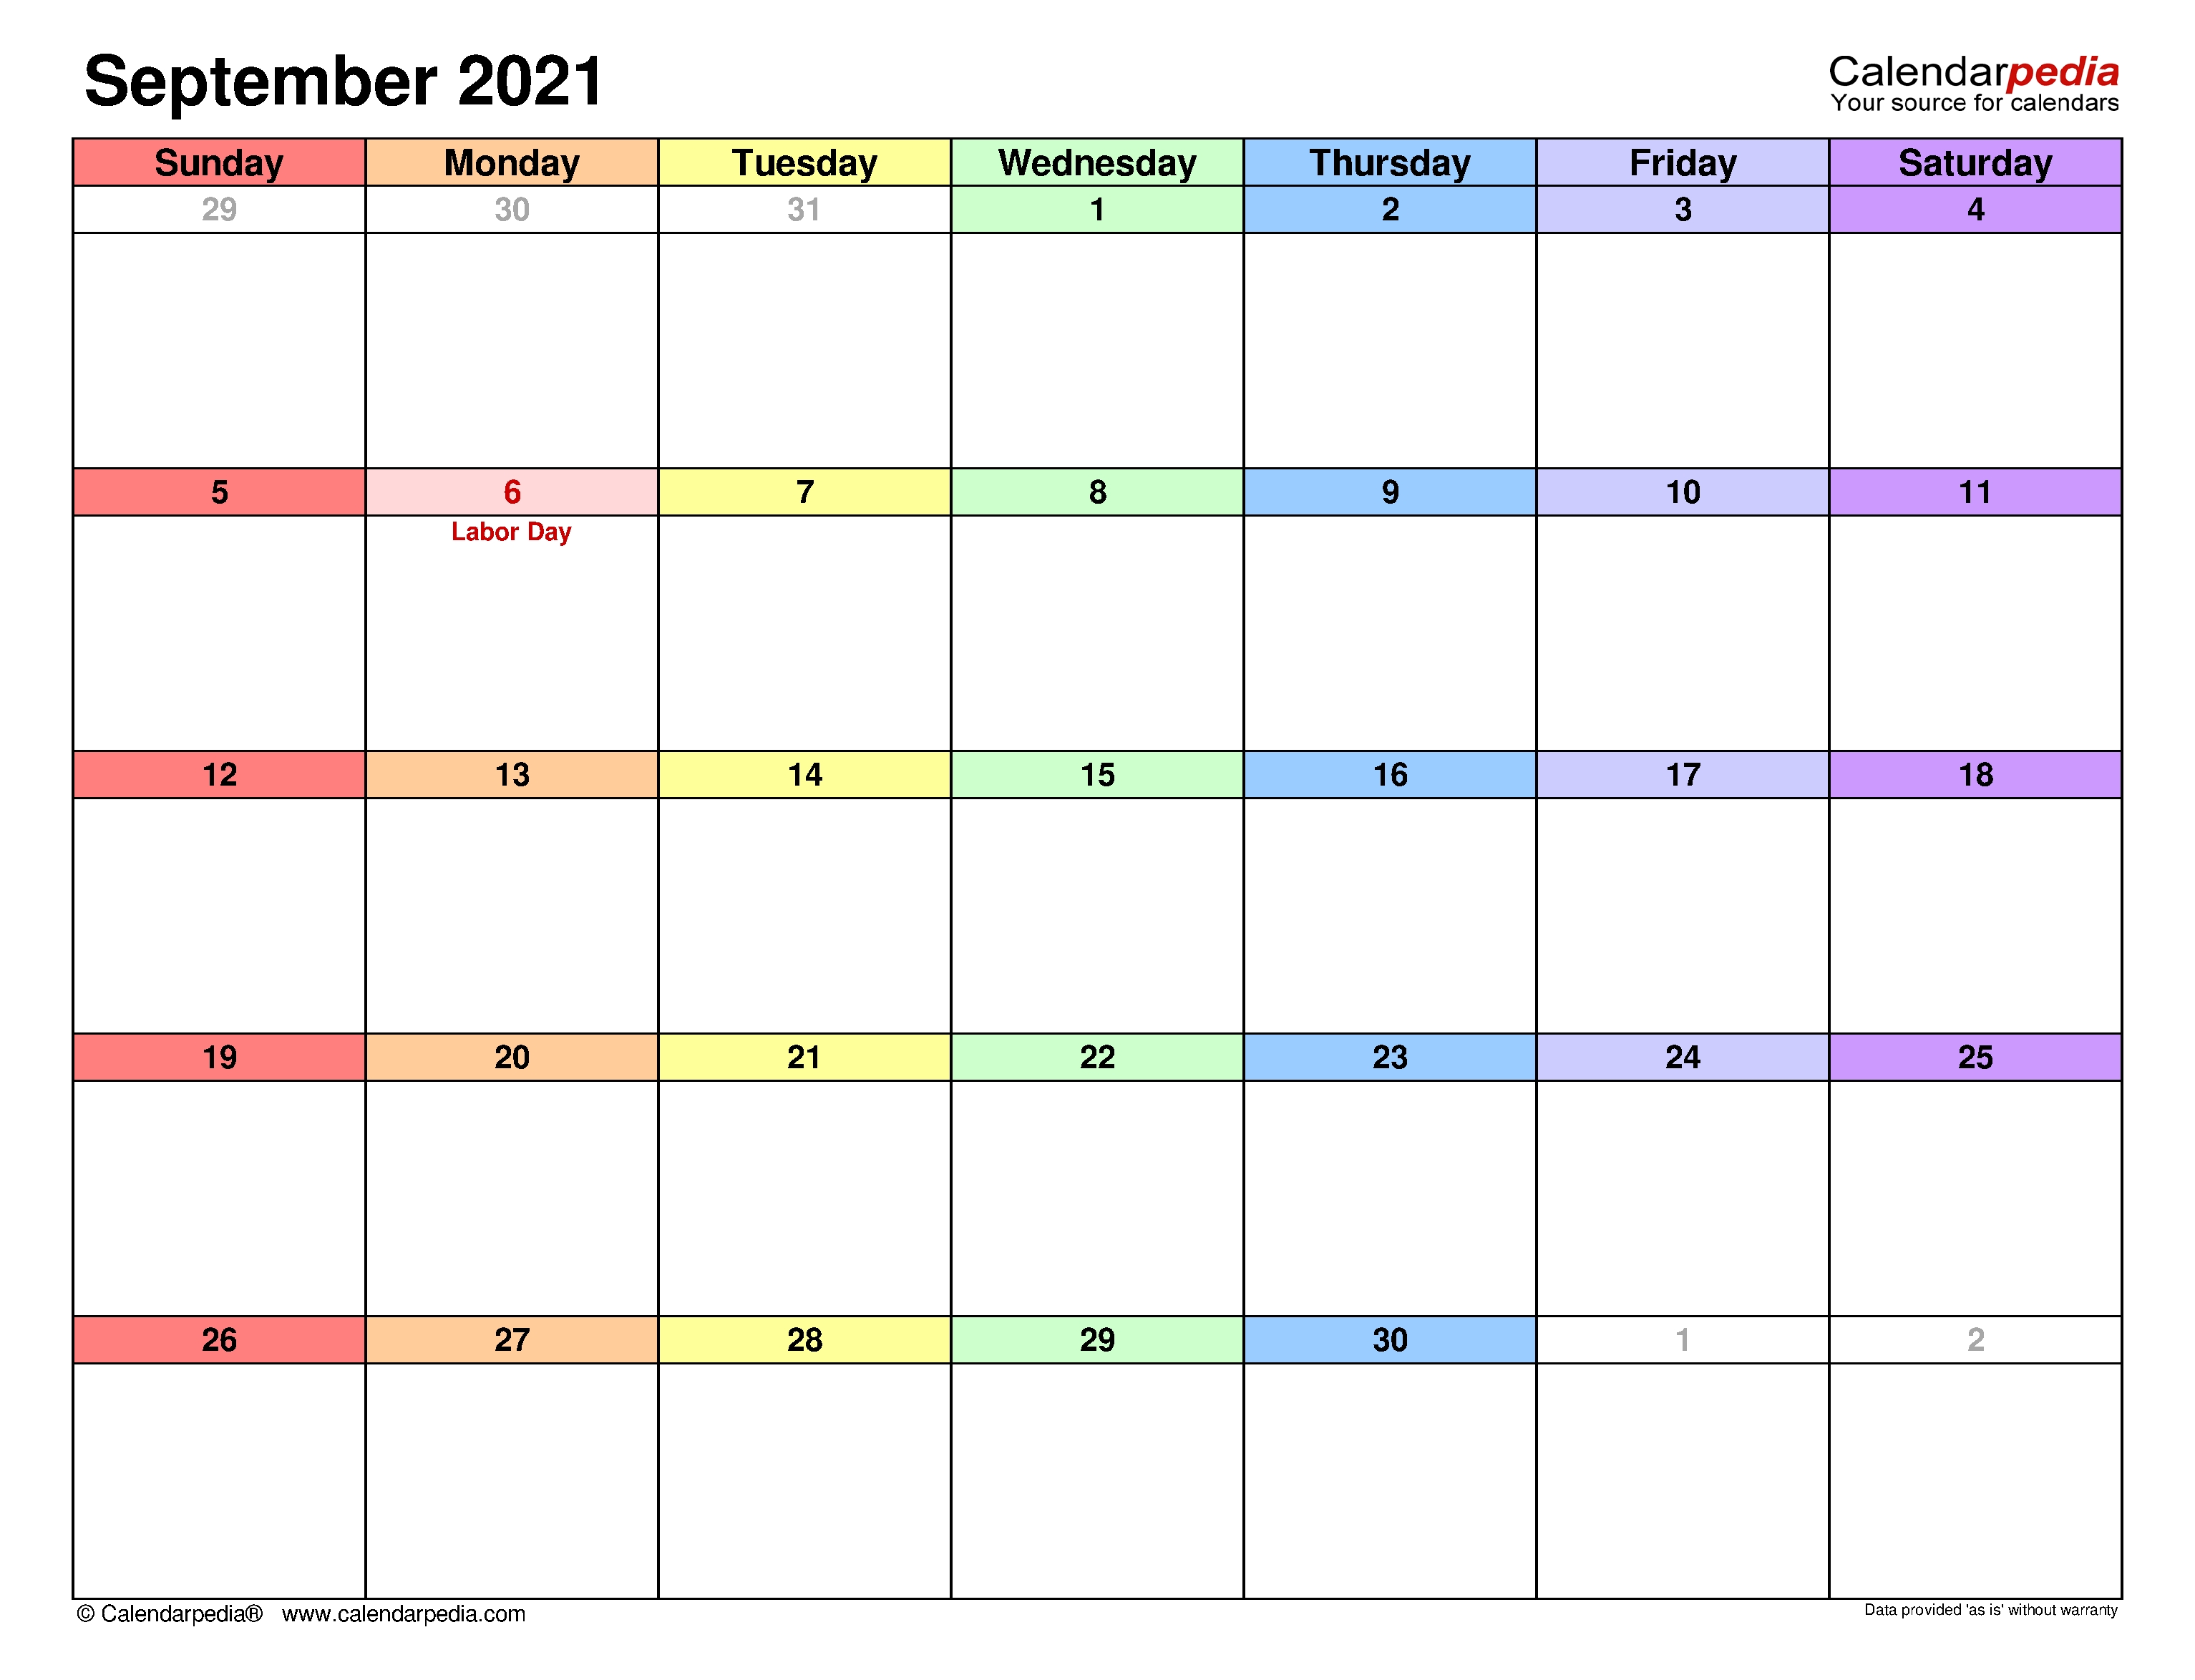 September 2021 Calendar | Templates For Word, Excel And Pdf Calendar May To September 2021